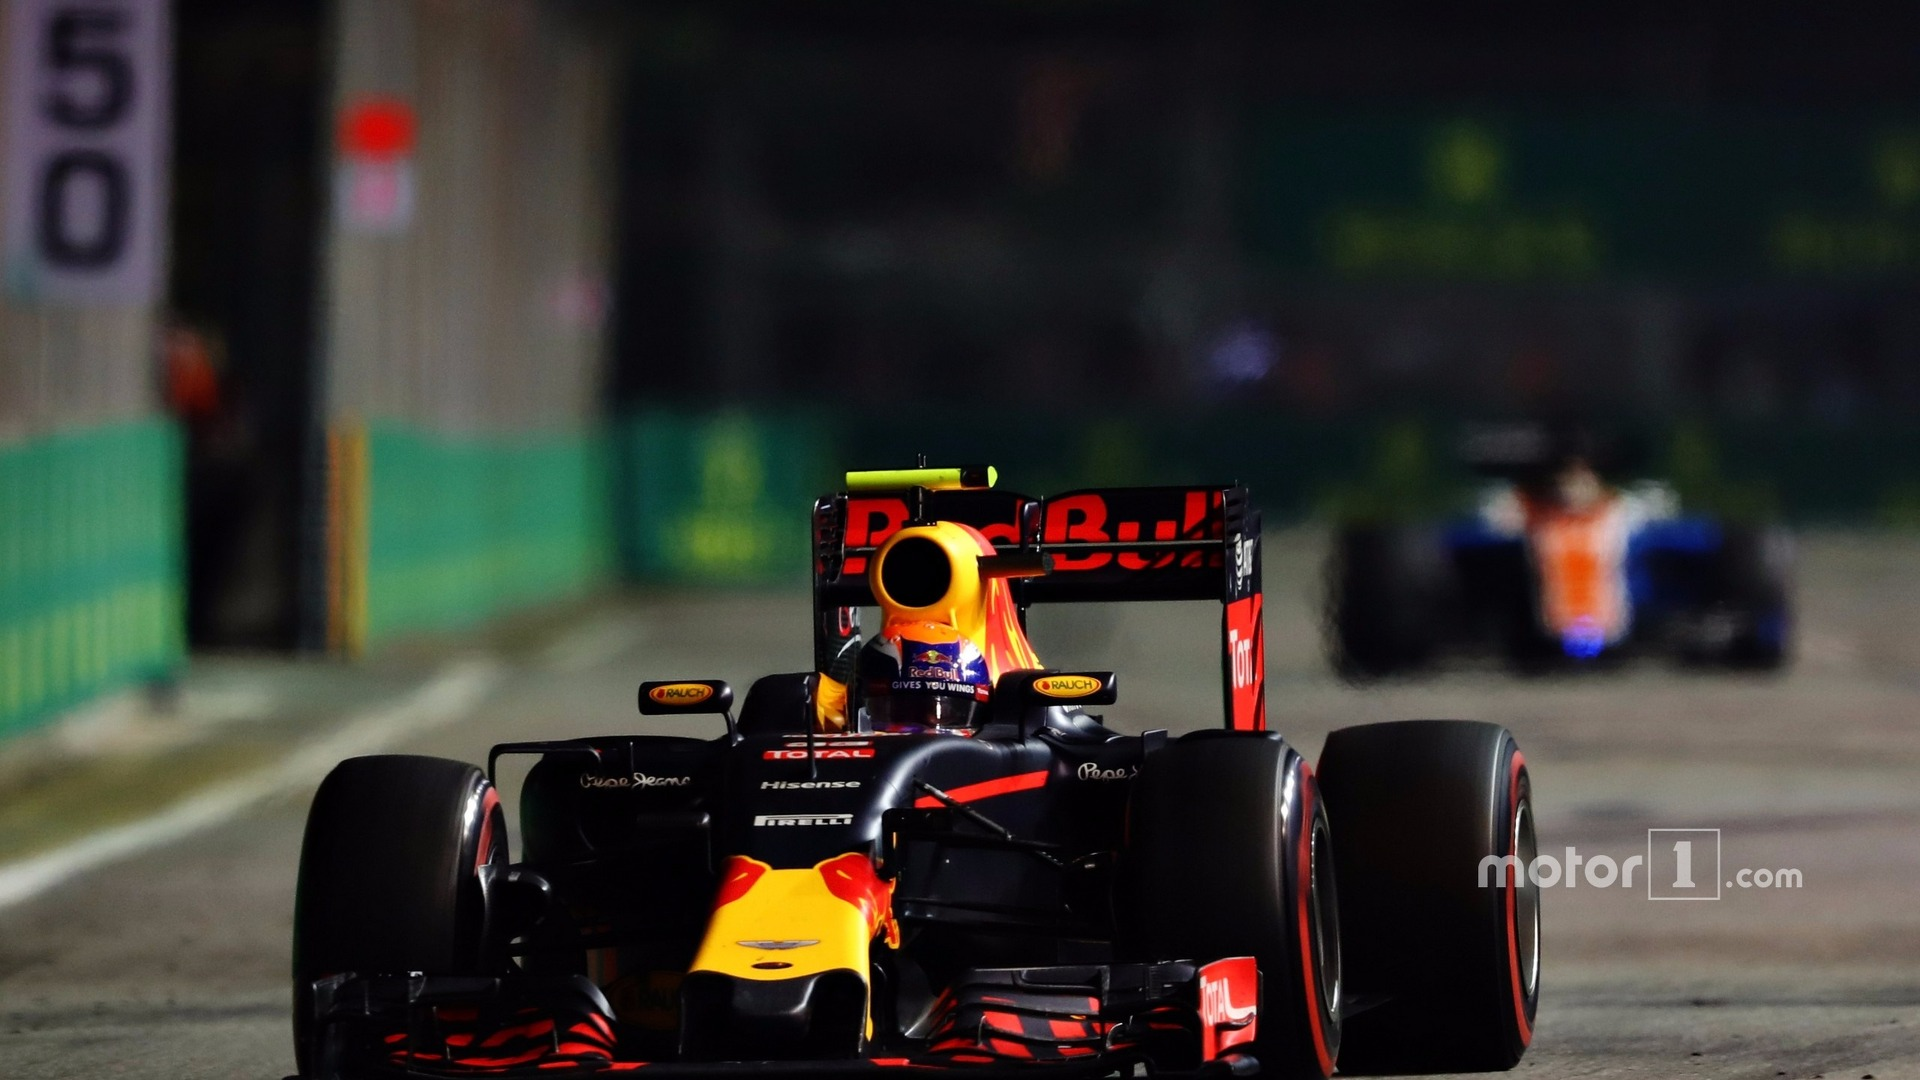 Verstappen: Red Bull has found answers to poor starts